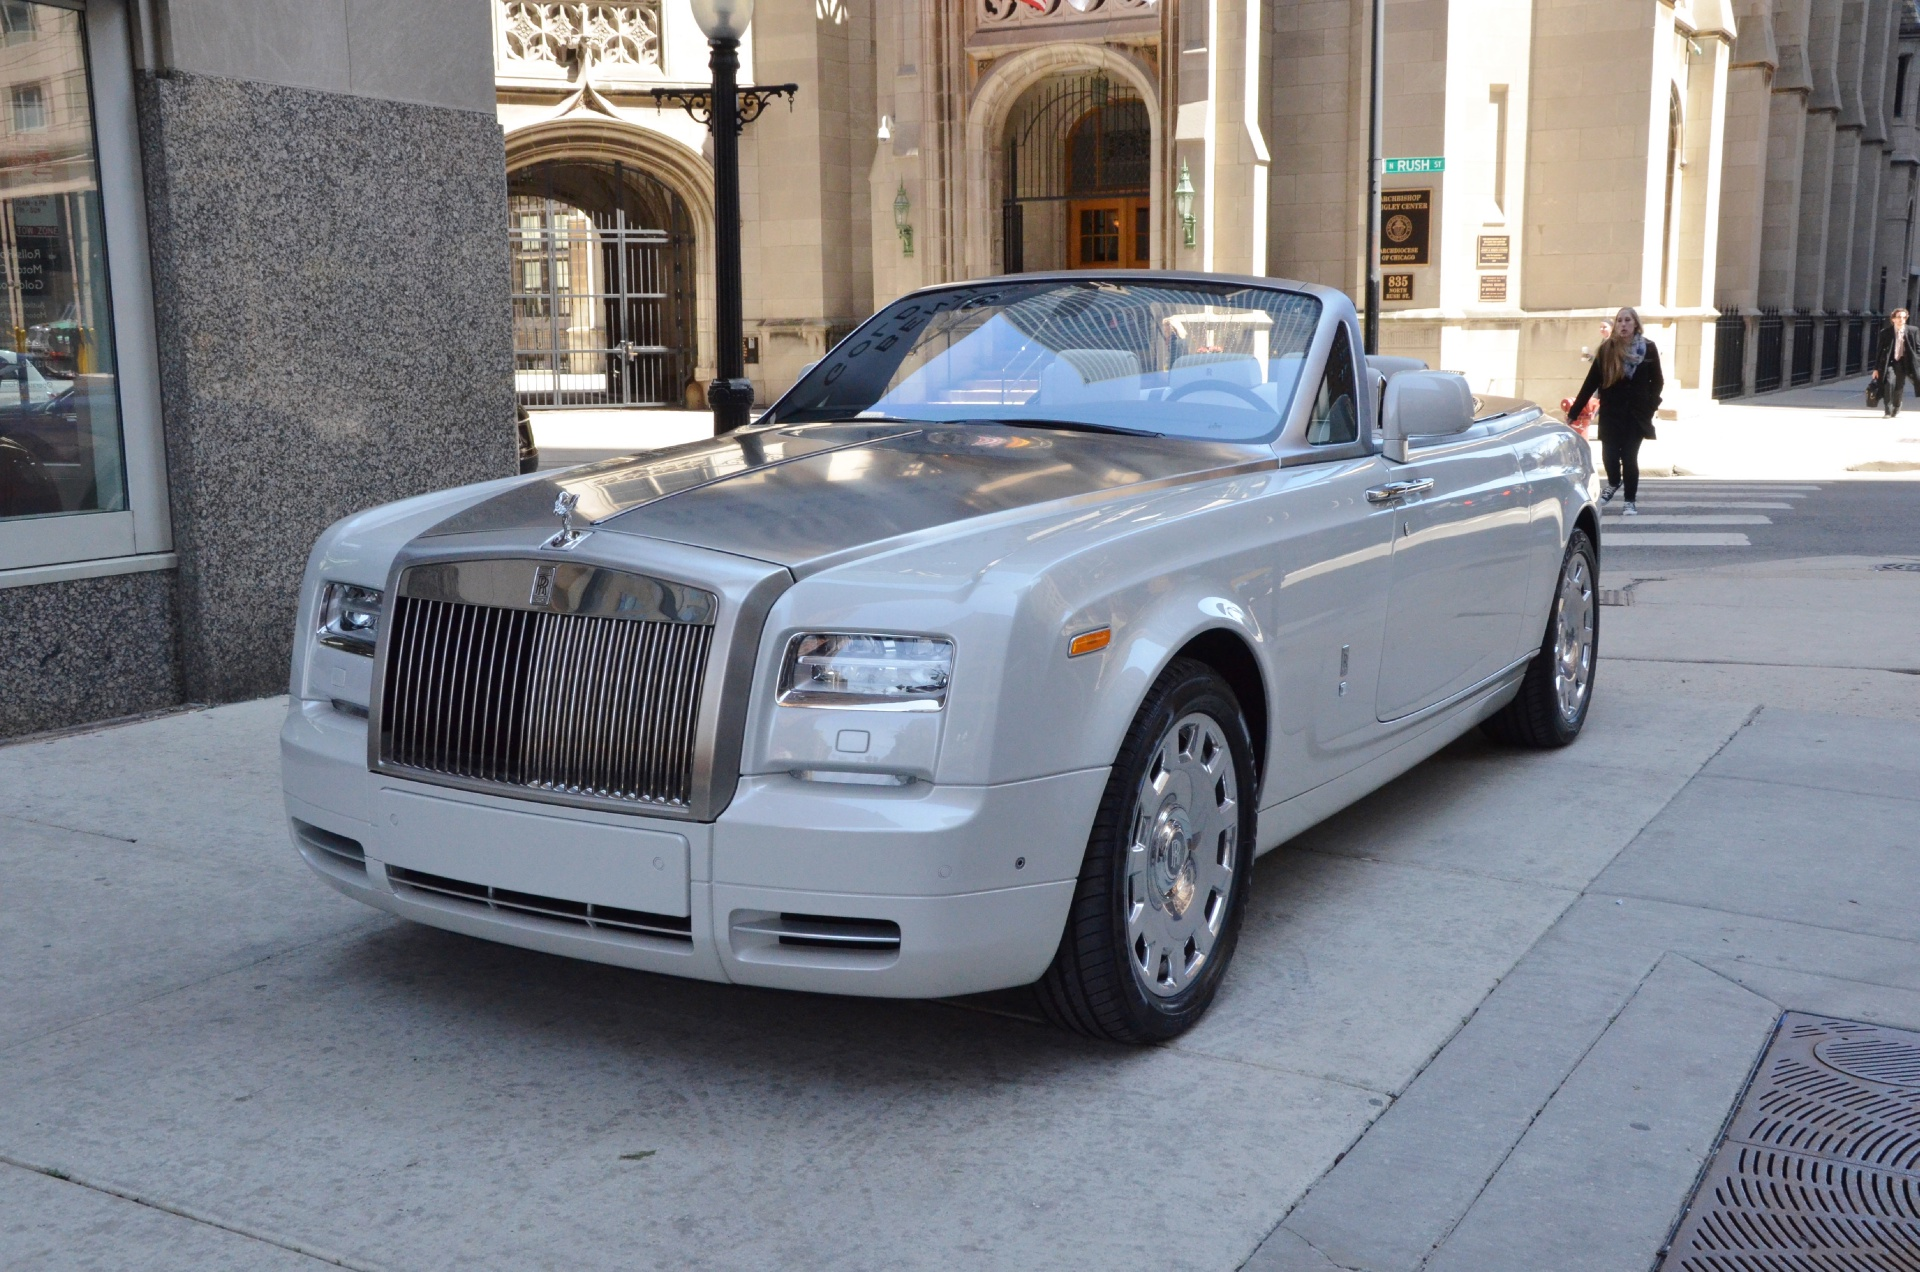 2014 Rolls royce Phantom Drophead Coupe #24